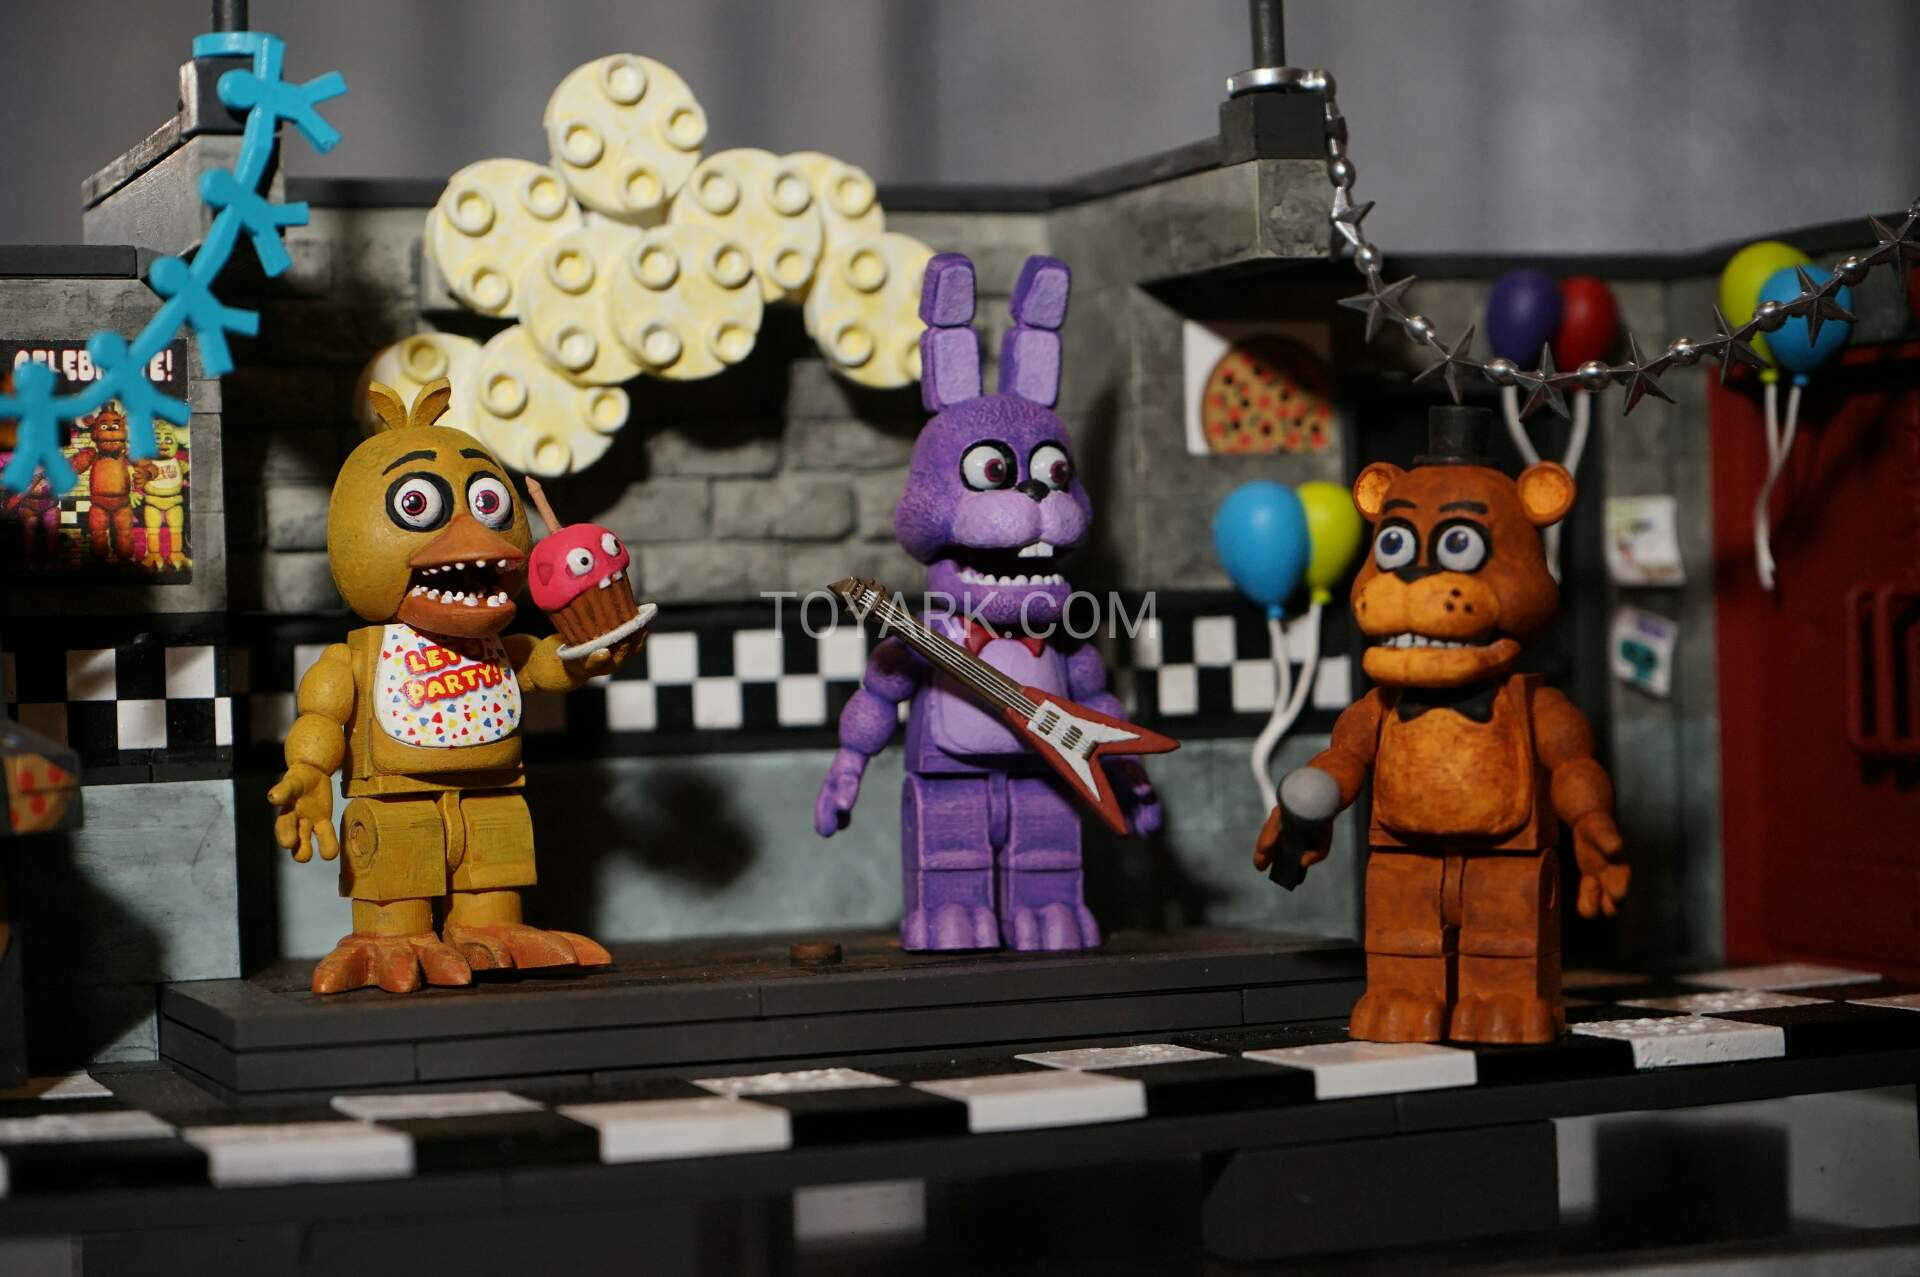 More five nights at freddy s construction sets coming soon - Tf 2016 Mcfarlane Five Nights Construction 006